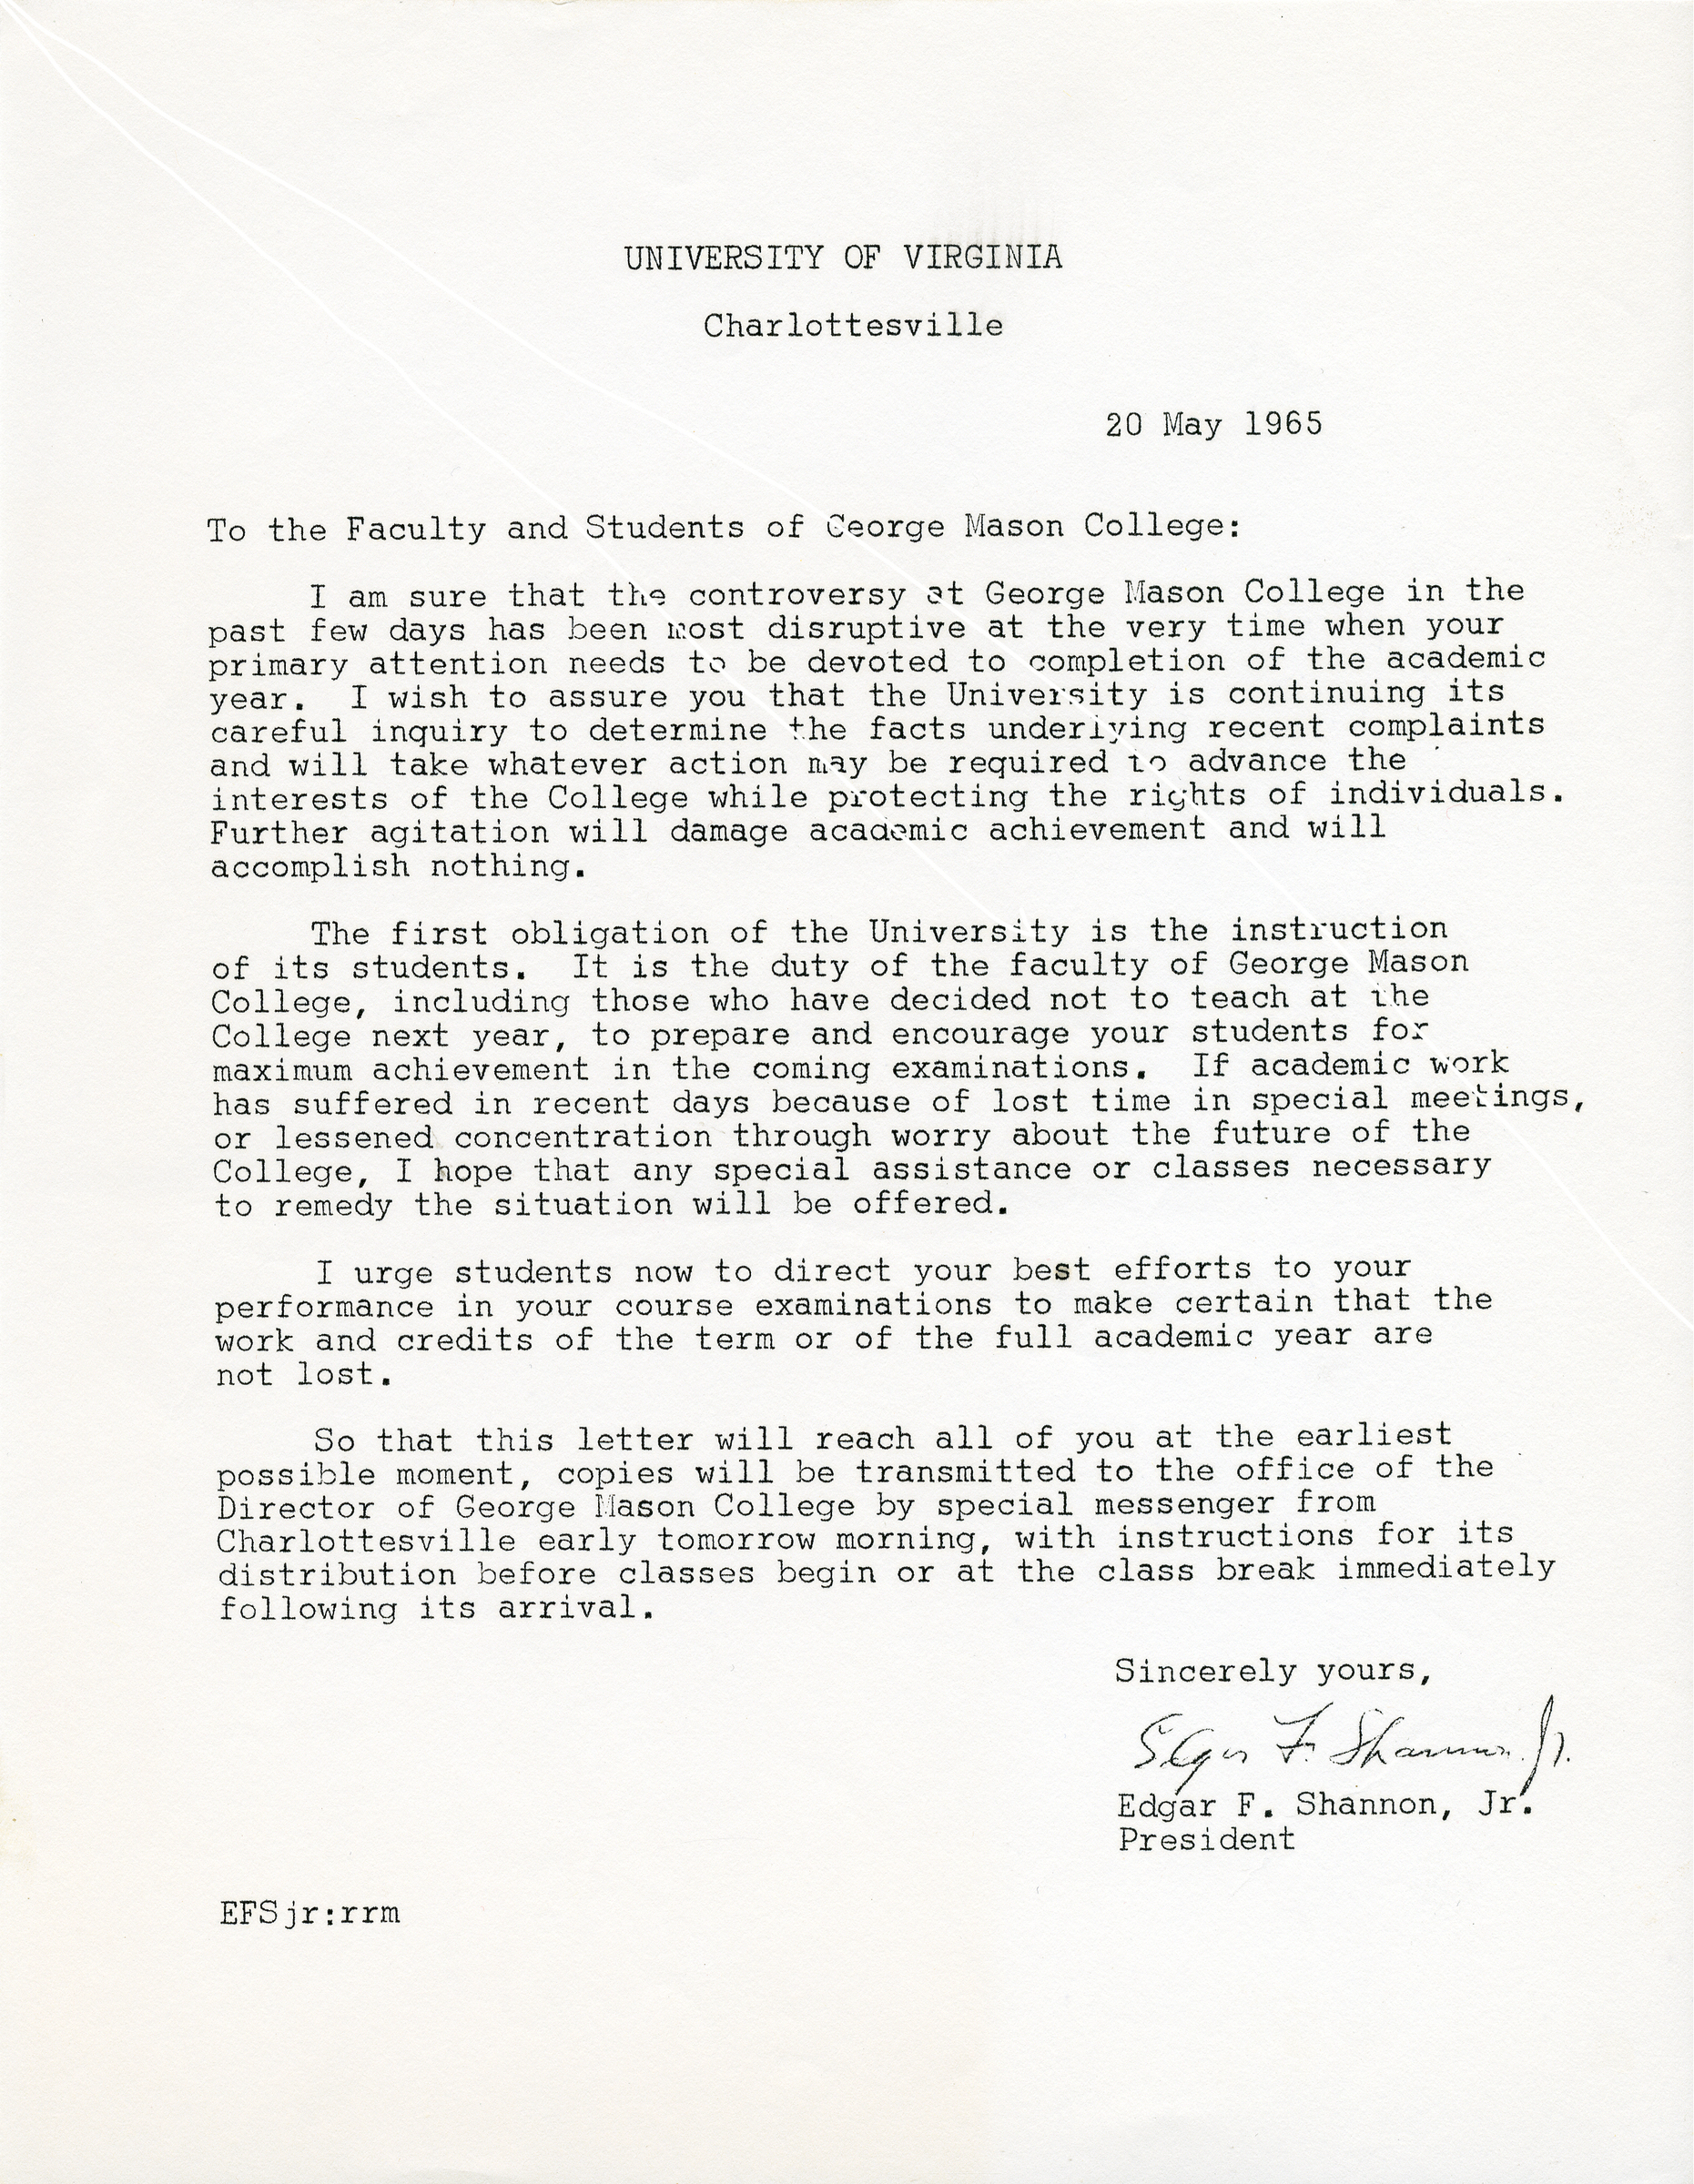 Edgar F. Shannon, Jr. to the Faculty and Students of George Mason College, May 20, 1965.